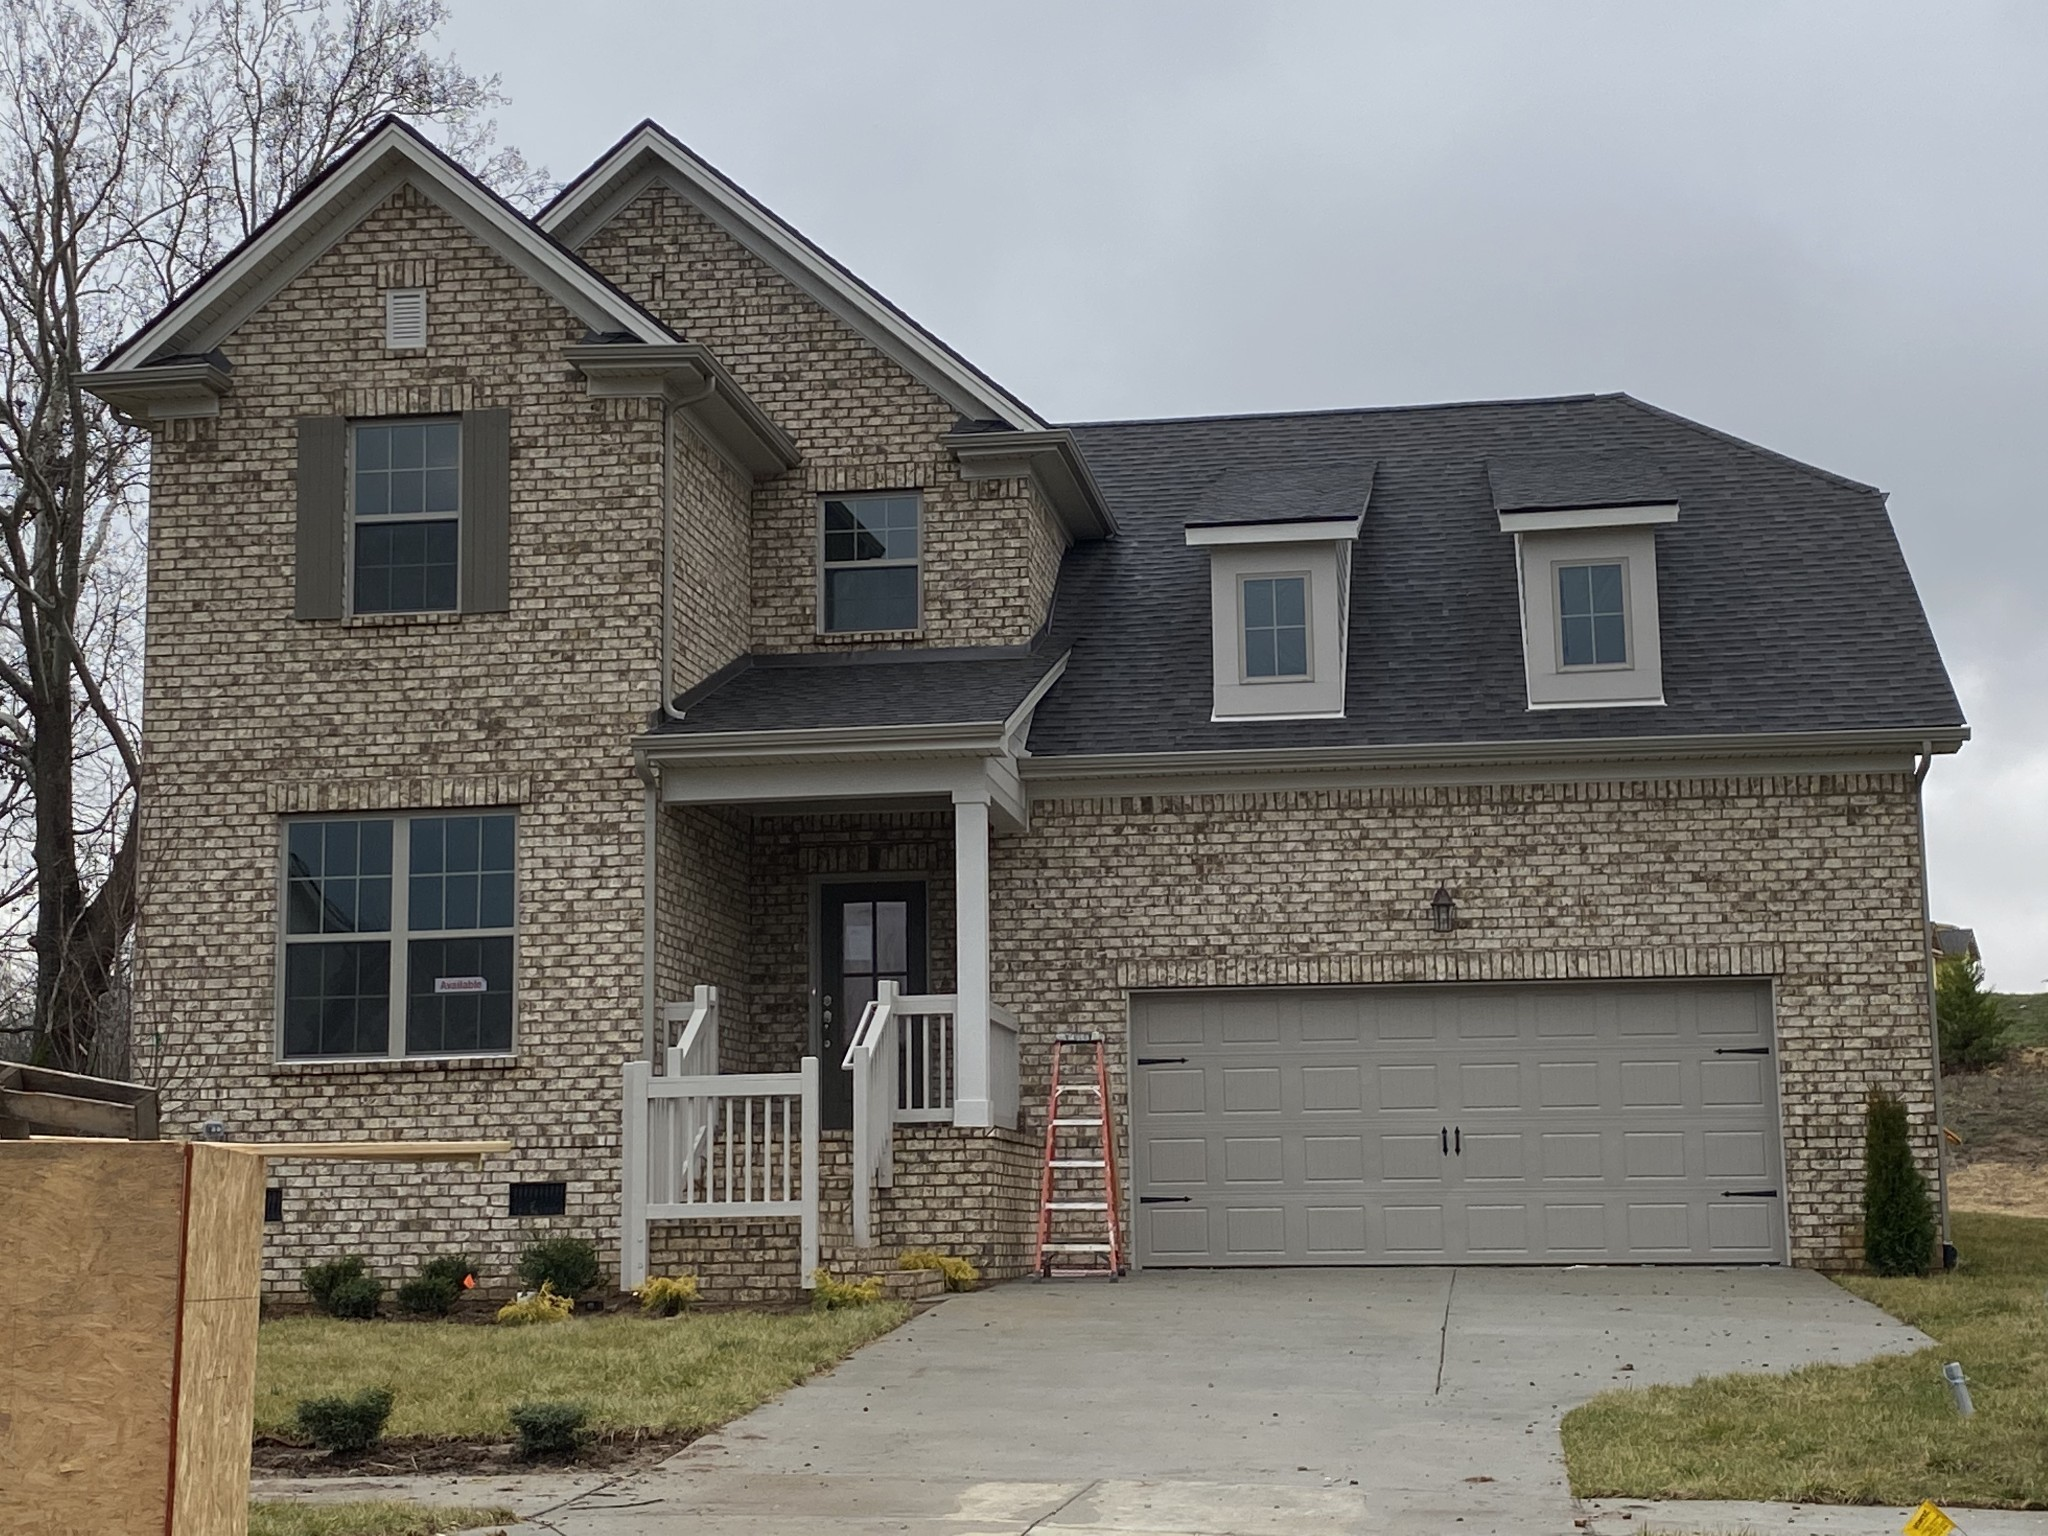 2768 Cloister Ln - Lot 1155, Thompsons Station, TN 37179 - Thompsons Station, TN real estate listing